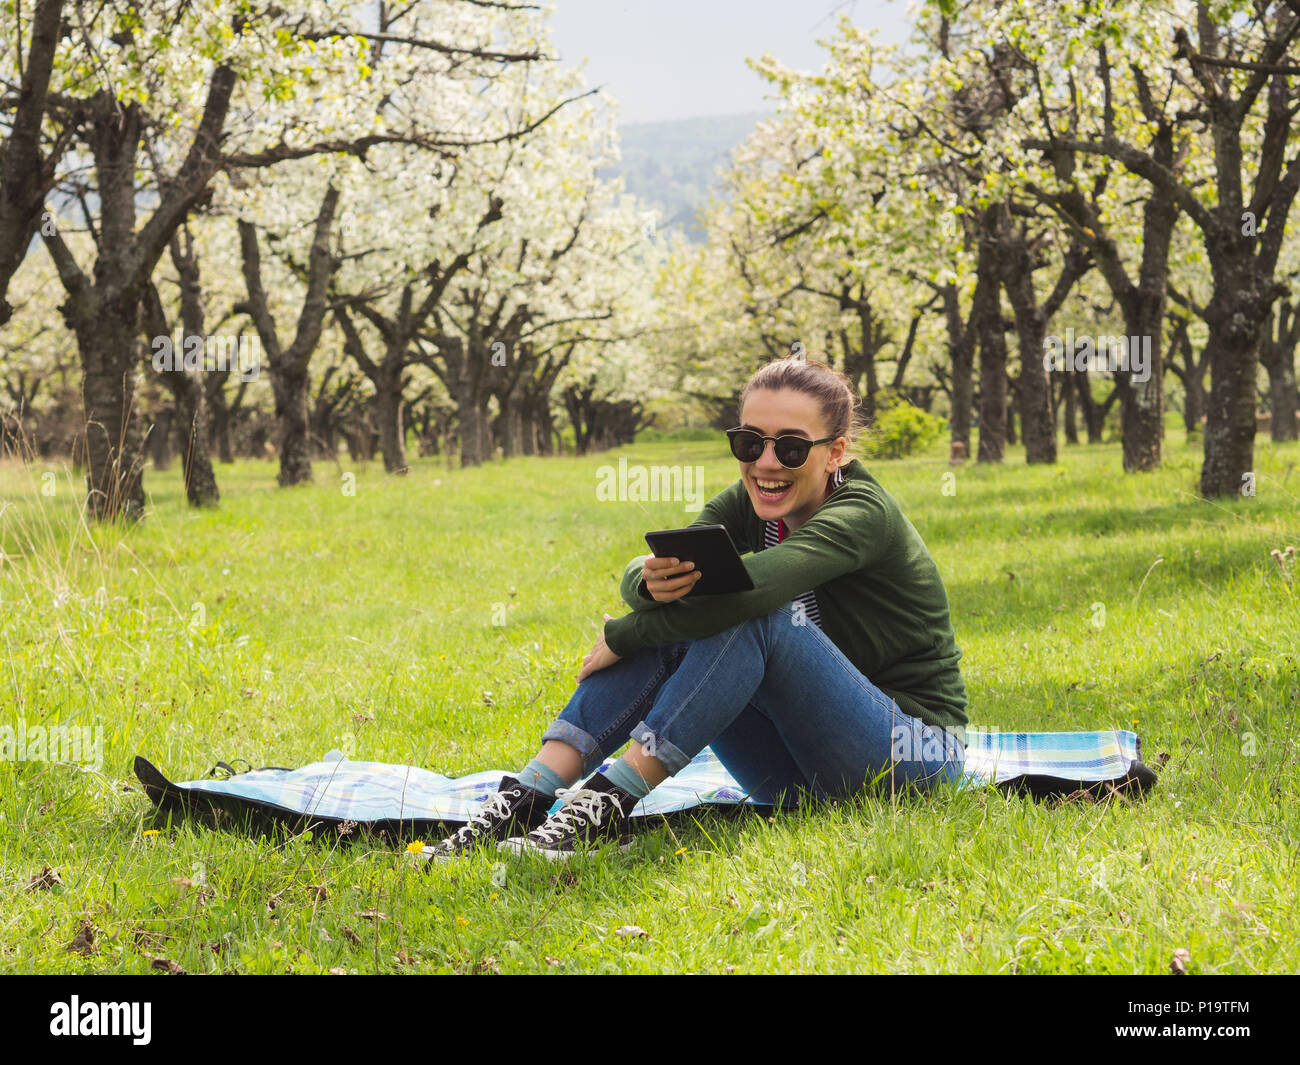 Young attractive woman reading on her ebook outdoors and laughing - Stock Image